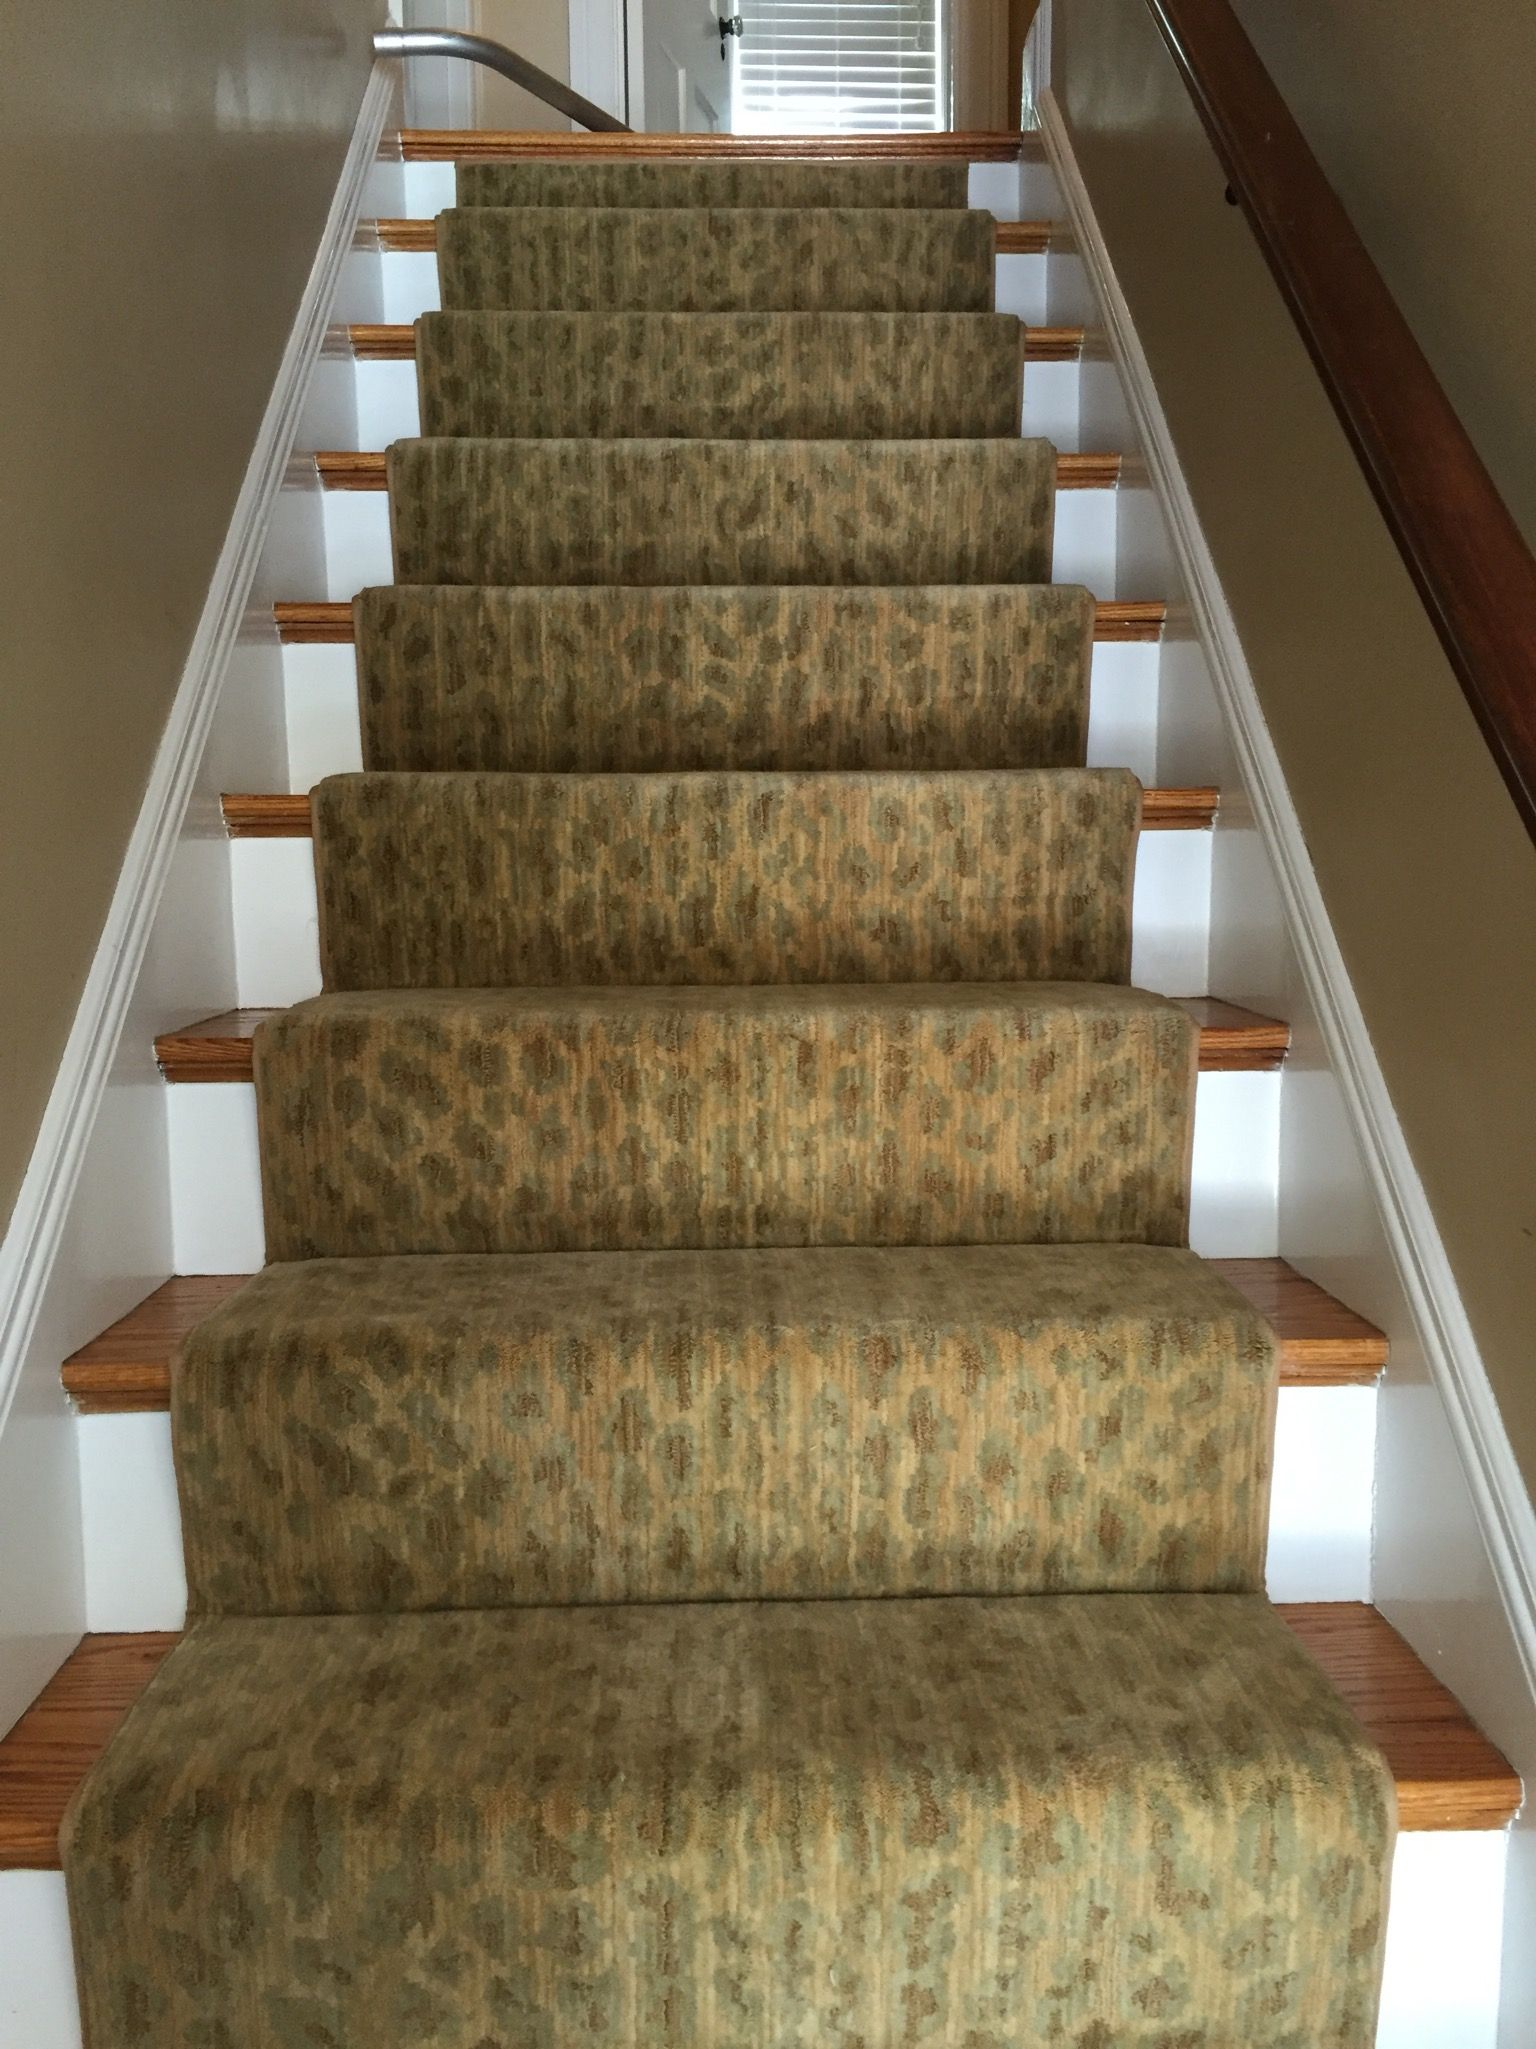 Stair Carpet Runner Stairs Runners Historic Homes Animal Prints